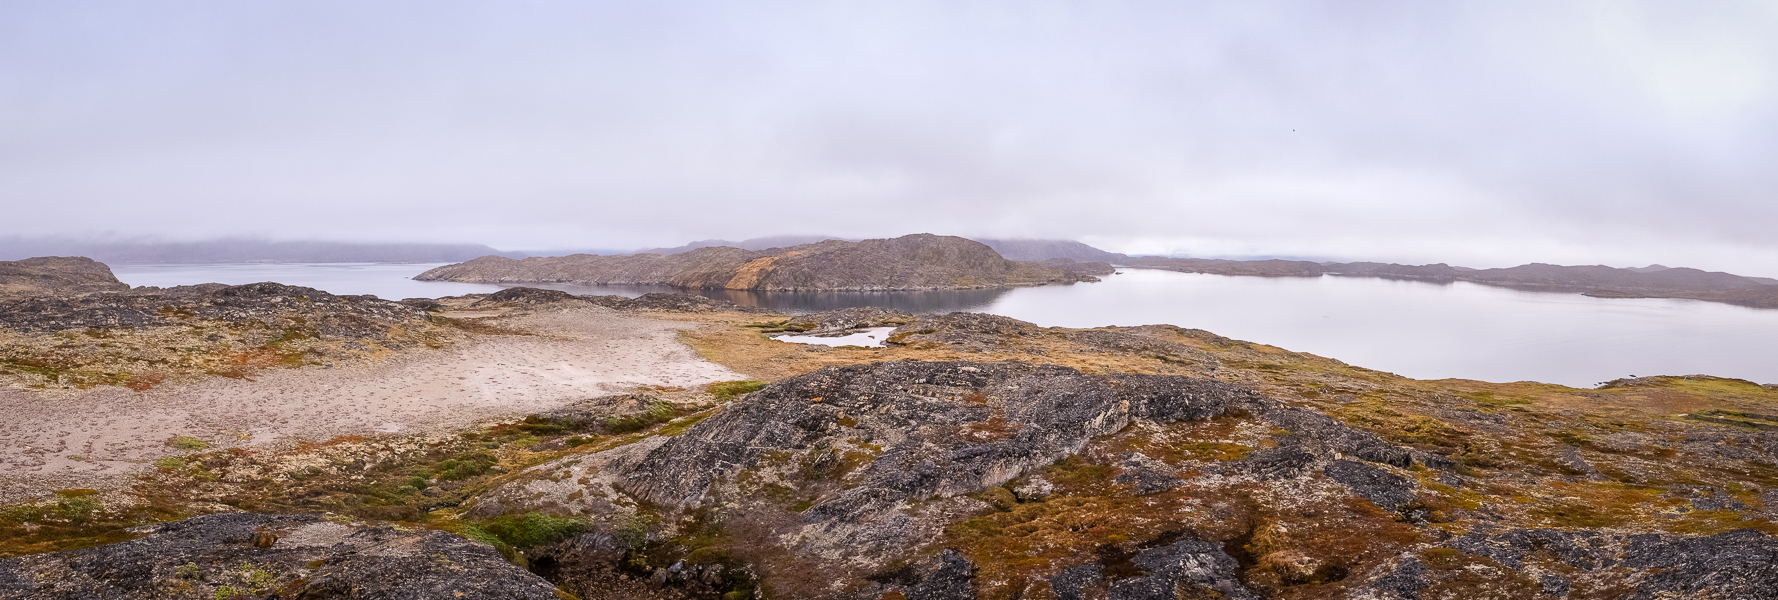 Panorama from the top of Nipisat Island near Sisimiut in West Greenland